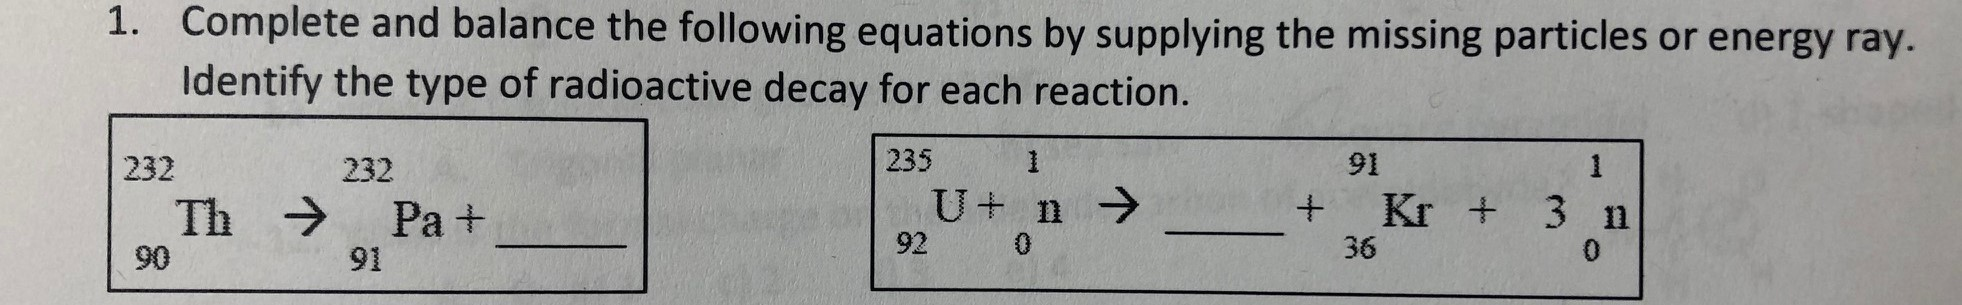 Complete and balance the following equations by supplying the missing particles or energy ray. Identify the type of radioactive decay for each reaction. 1. 235 1 91 1 232 232 U n Kr + 3 n Th Pa + 92 0 36 0 90 91